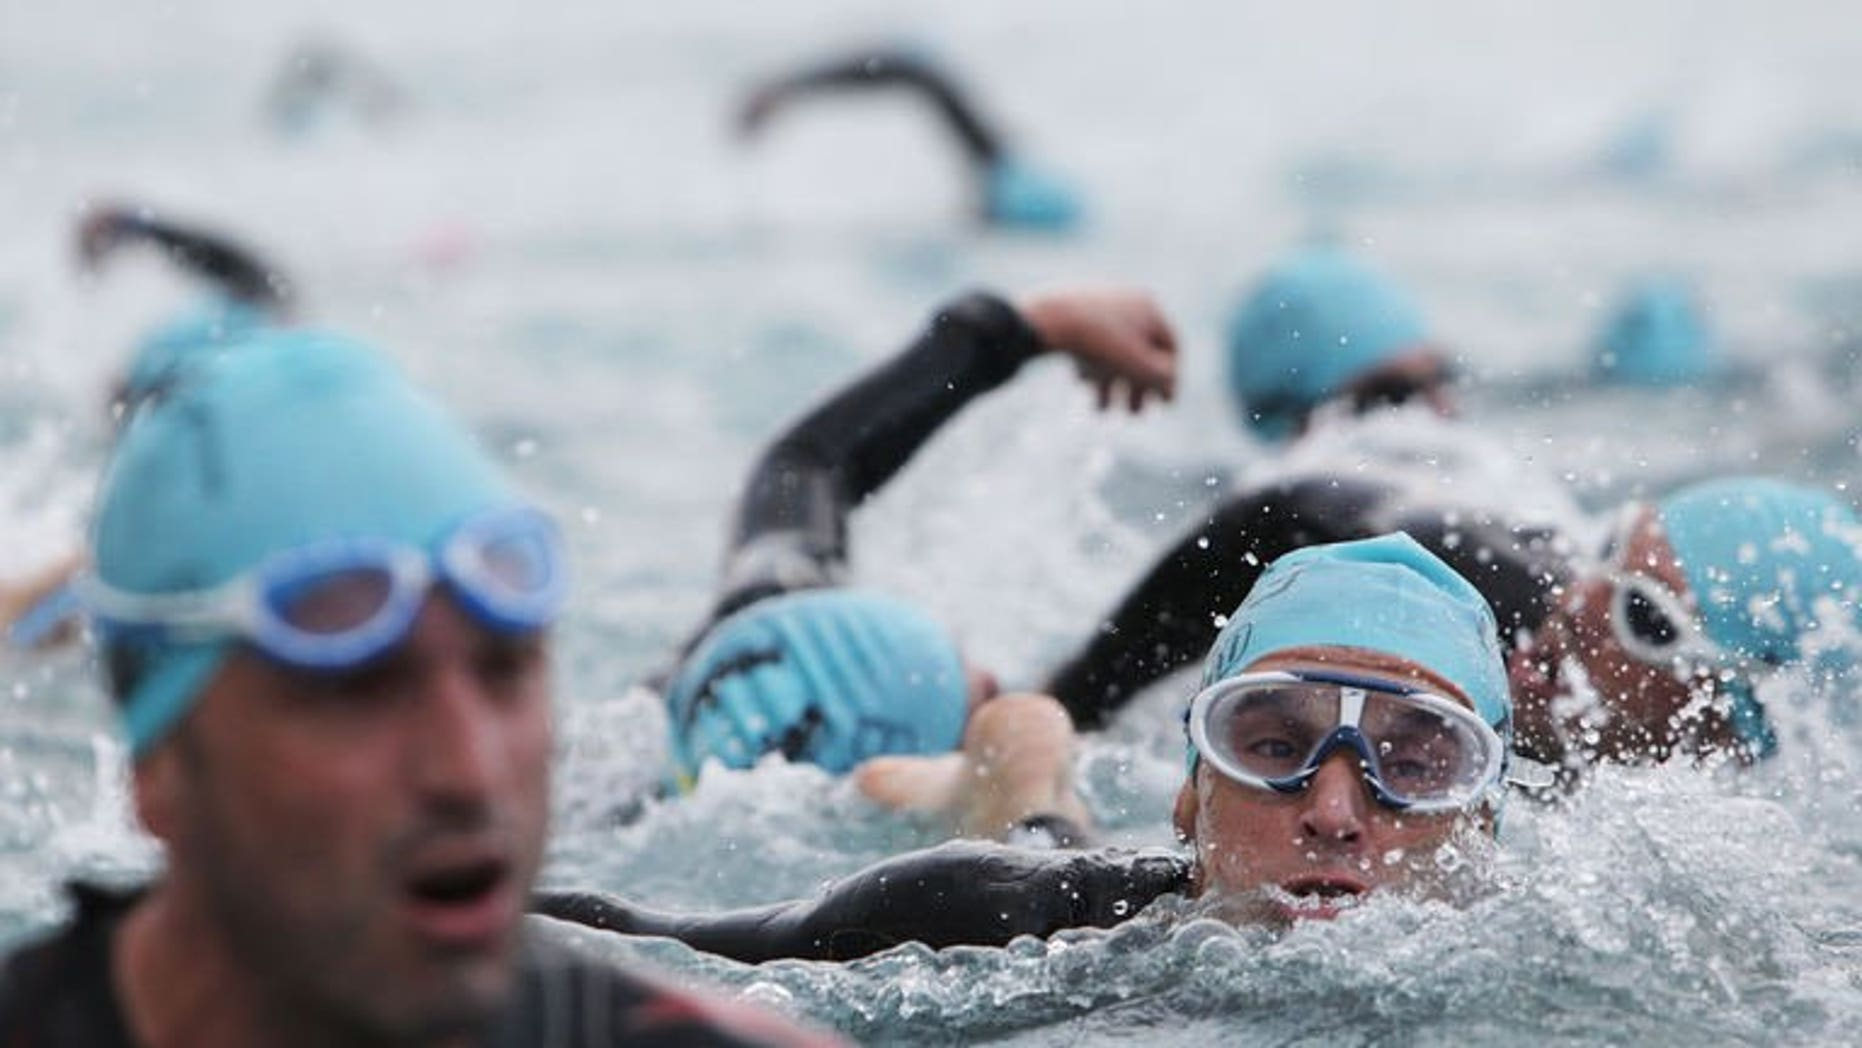 Triathletes swim during the Ironman race in Nice southeastern France on June 22, 2013. A 30-year-old Briton has died after crashing in the cycling section of the event on the French Riviera, emergency services said.